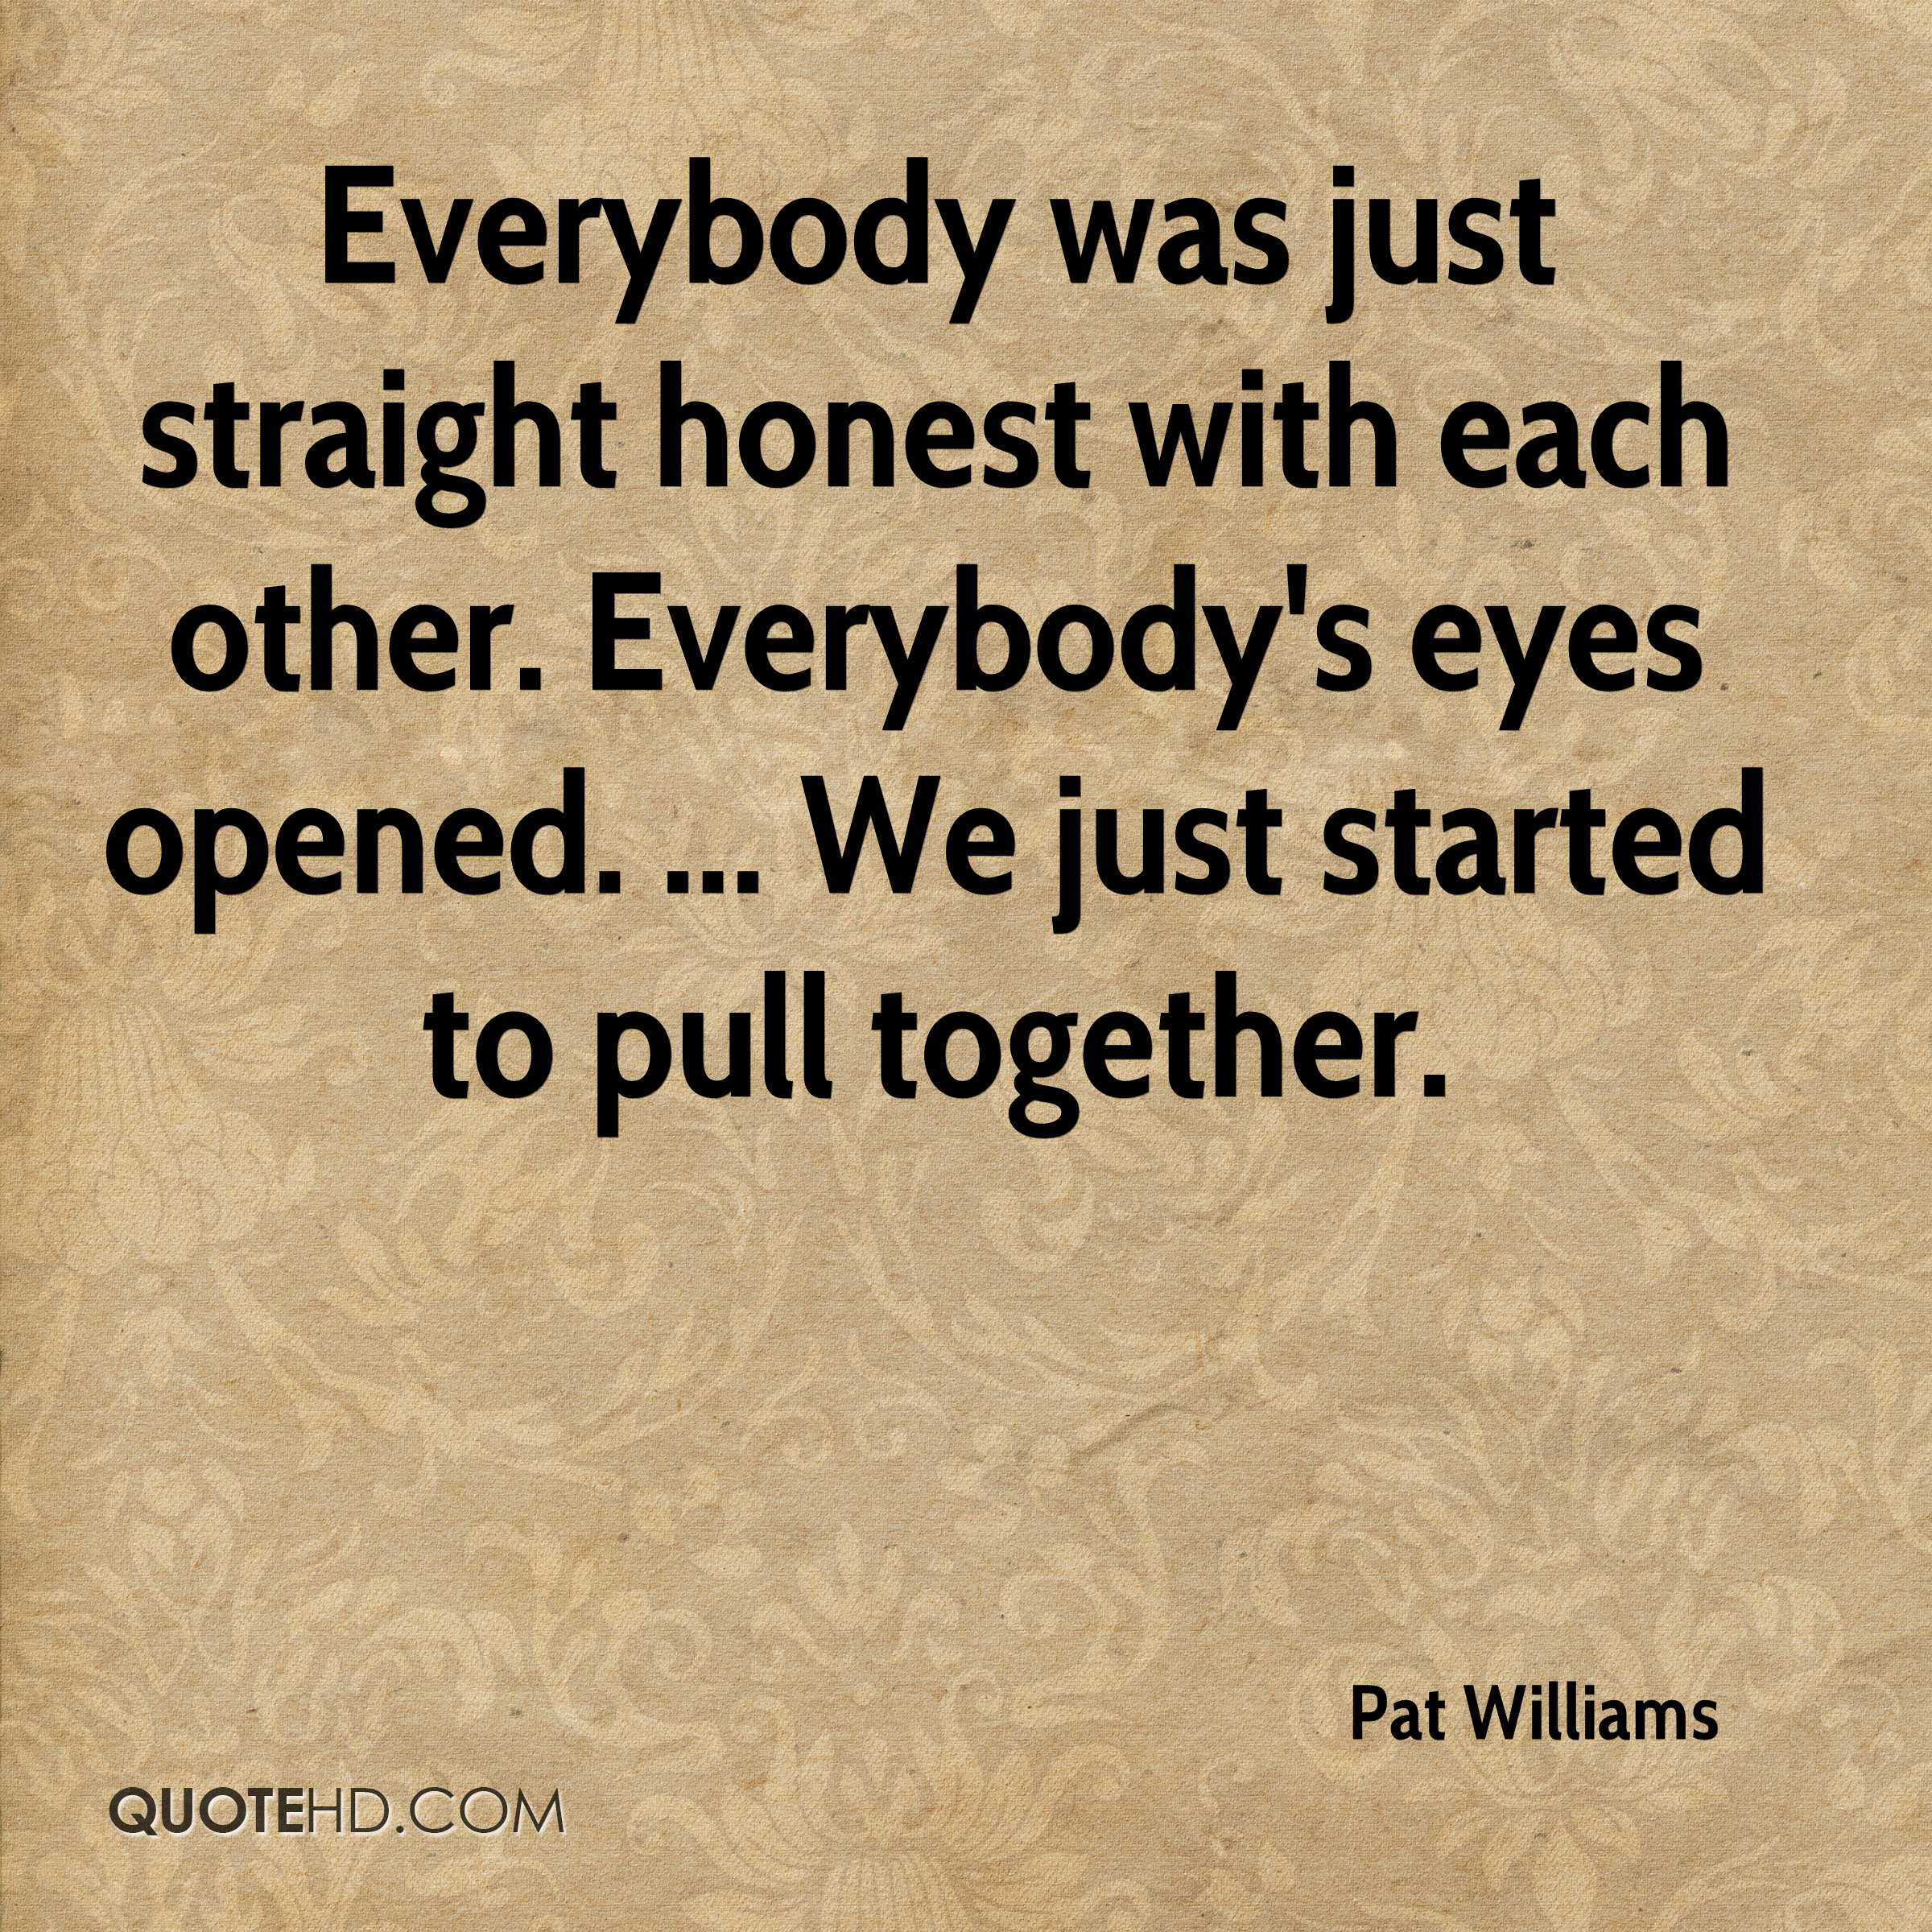 Everybody was just straight honest with each other. Everybody's eyes opened. ... We just started to pull together.